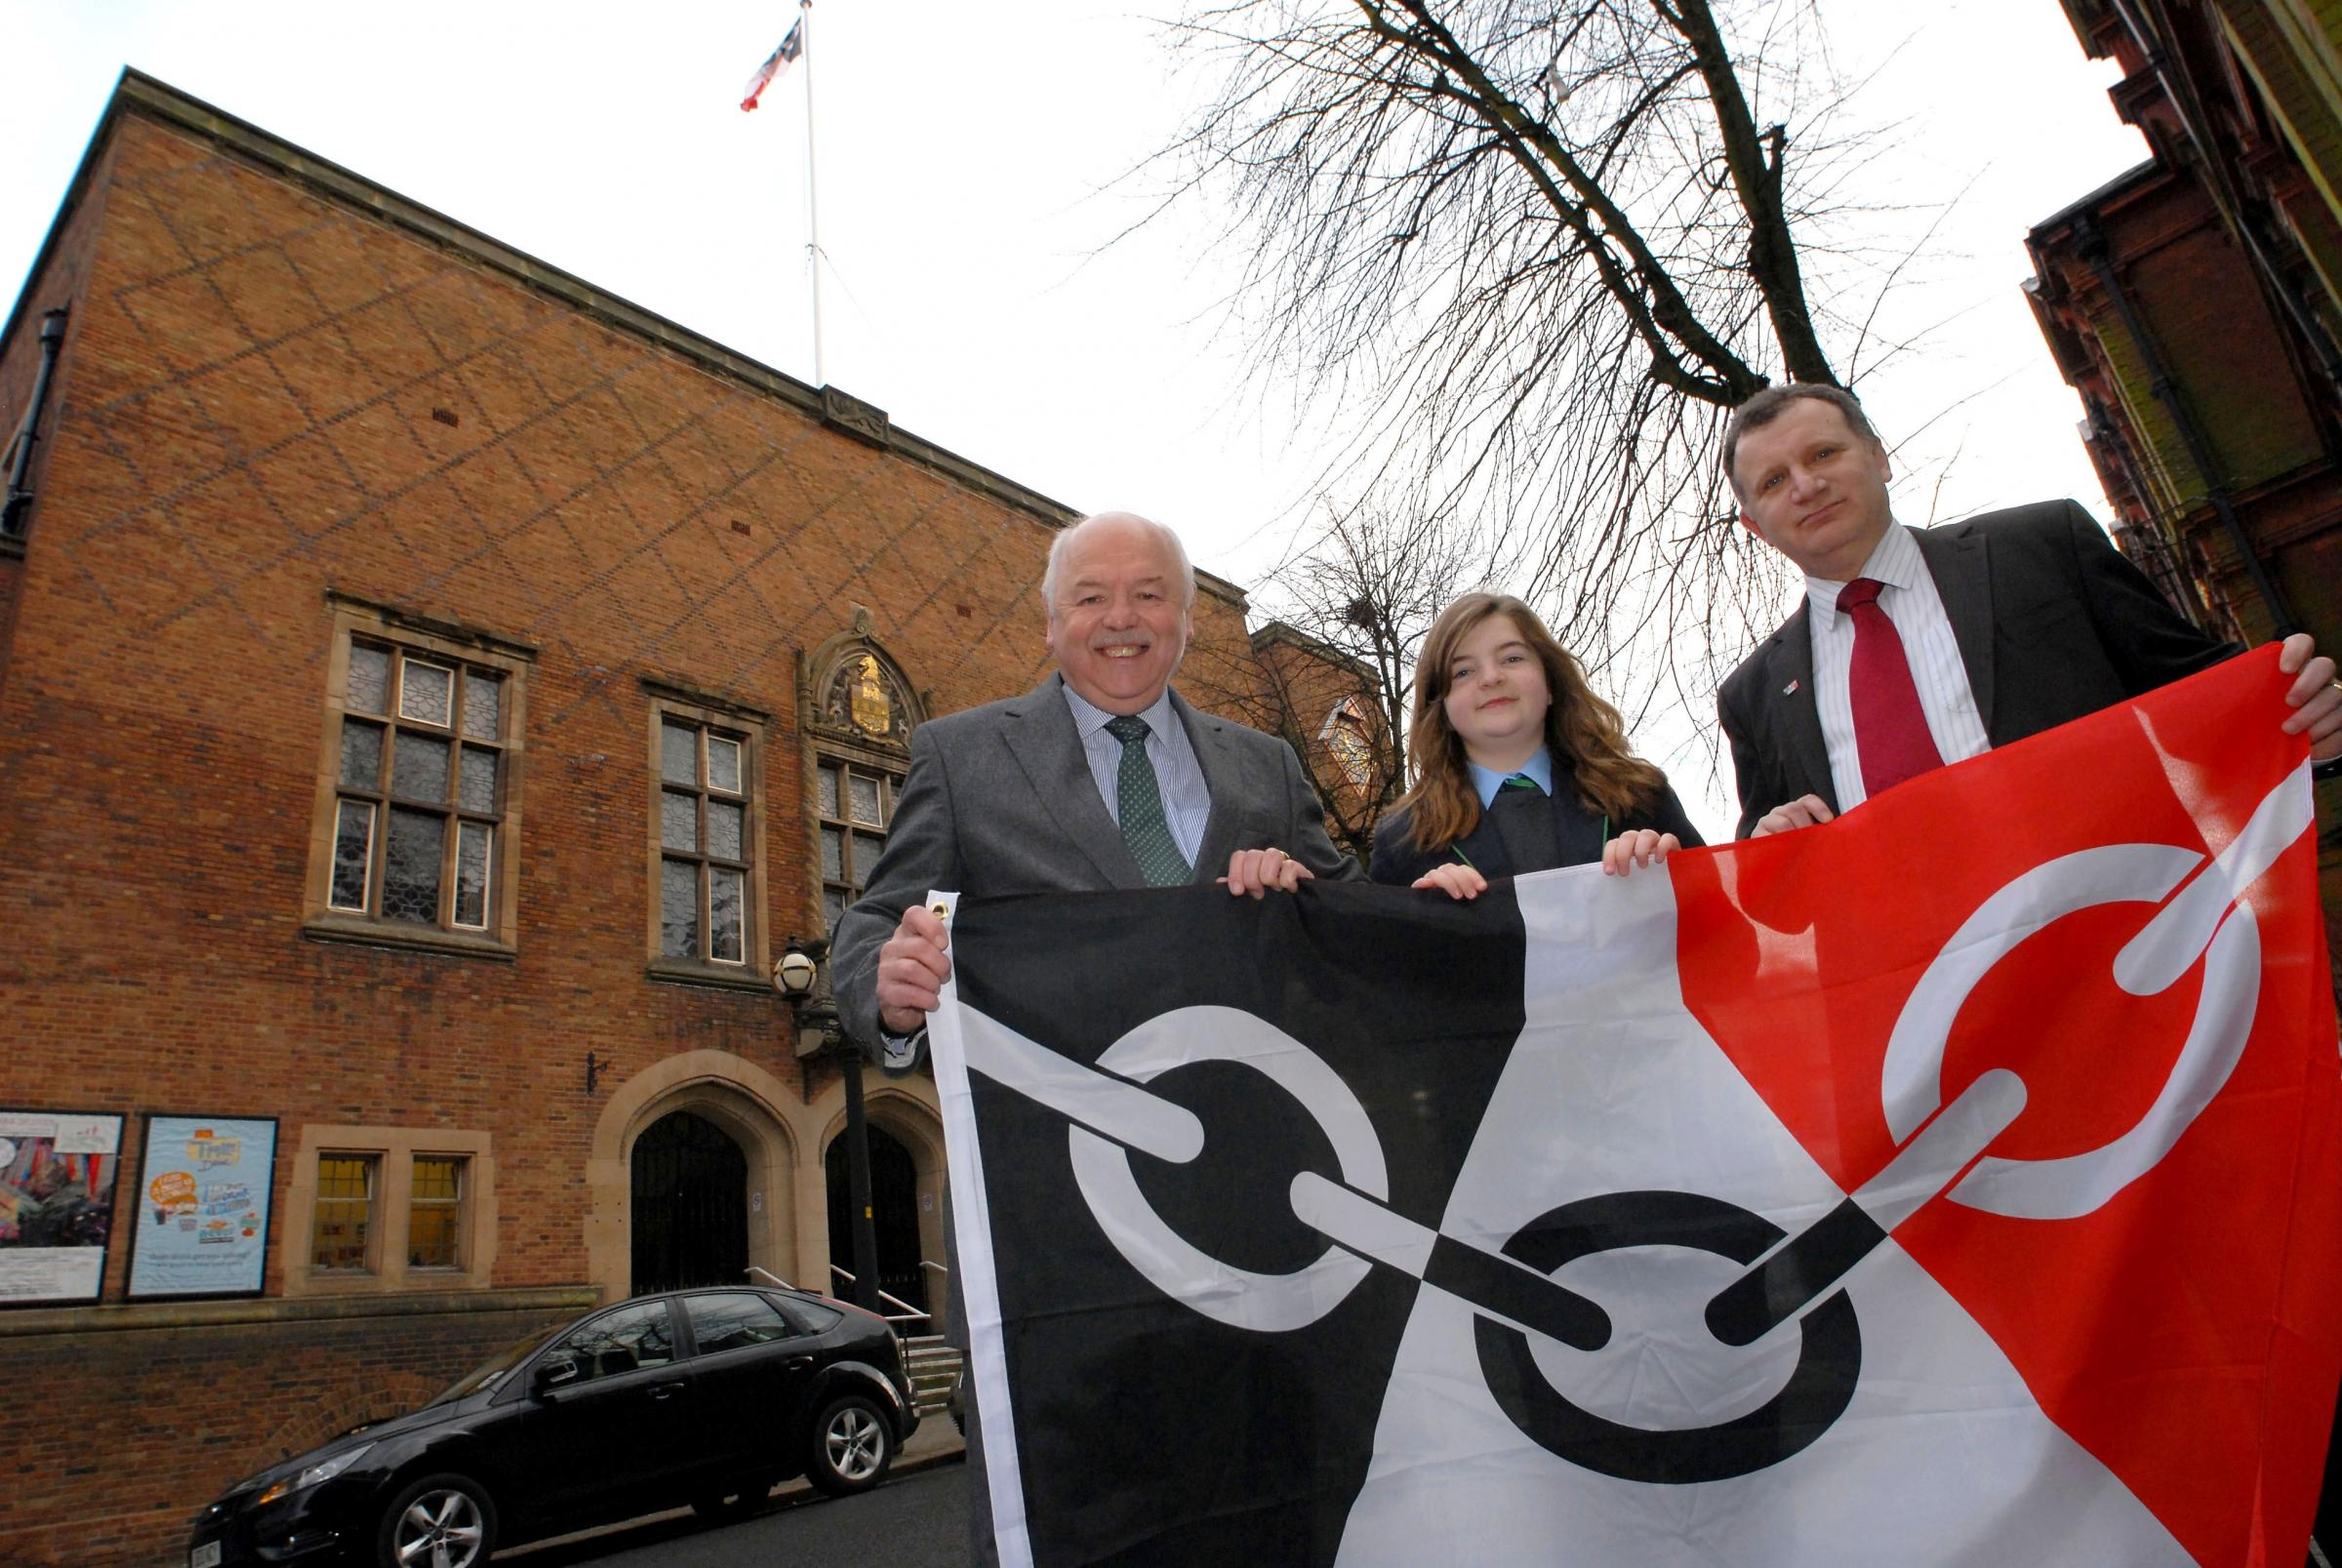 Dudley council leader, cllr David Sparks with Redhilll school pupil Gracie Sheppard who designed the Black Country Flag and Dudley deputy leader, cllr Pete Lowe